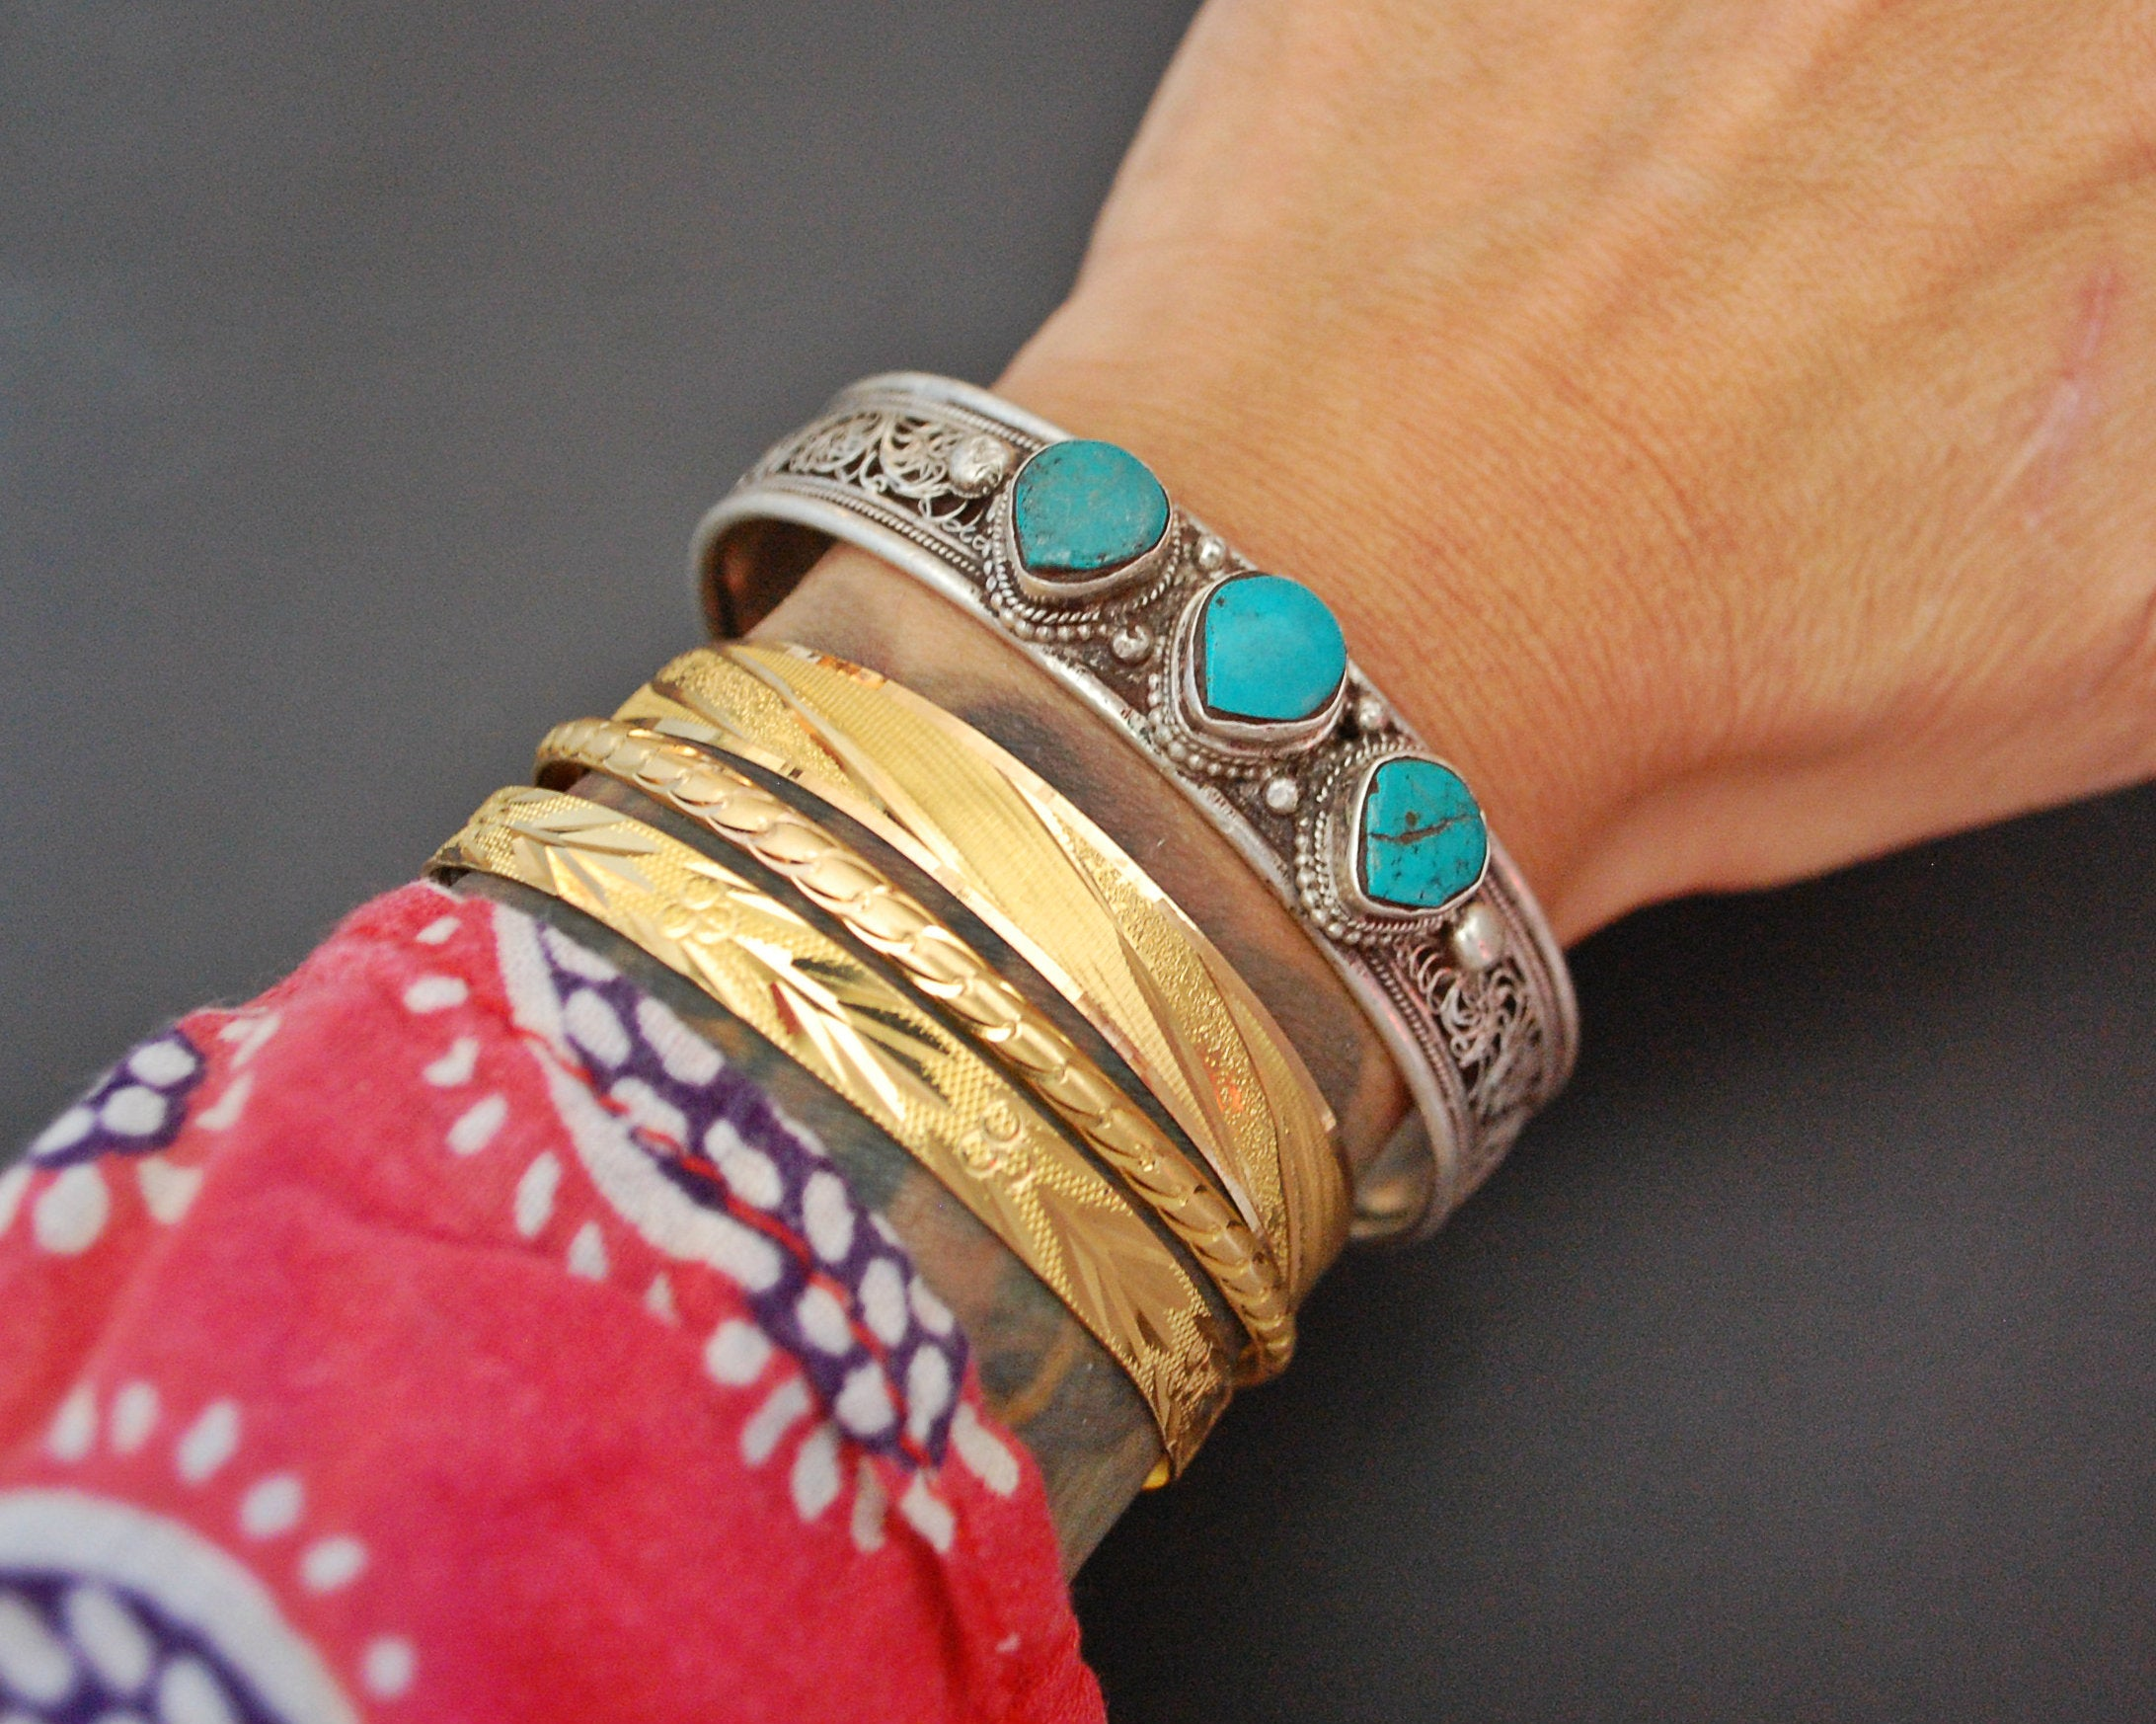 Nepali Turquoise Cuff Bracelet with Filigree